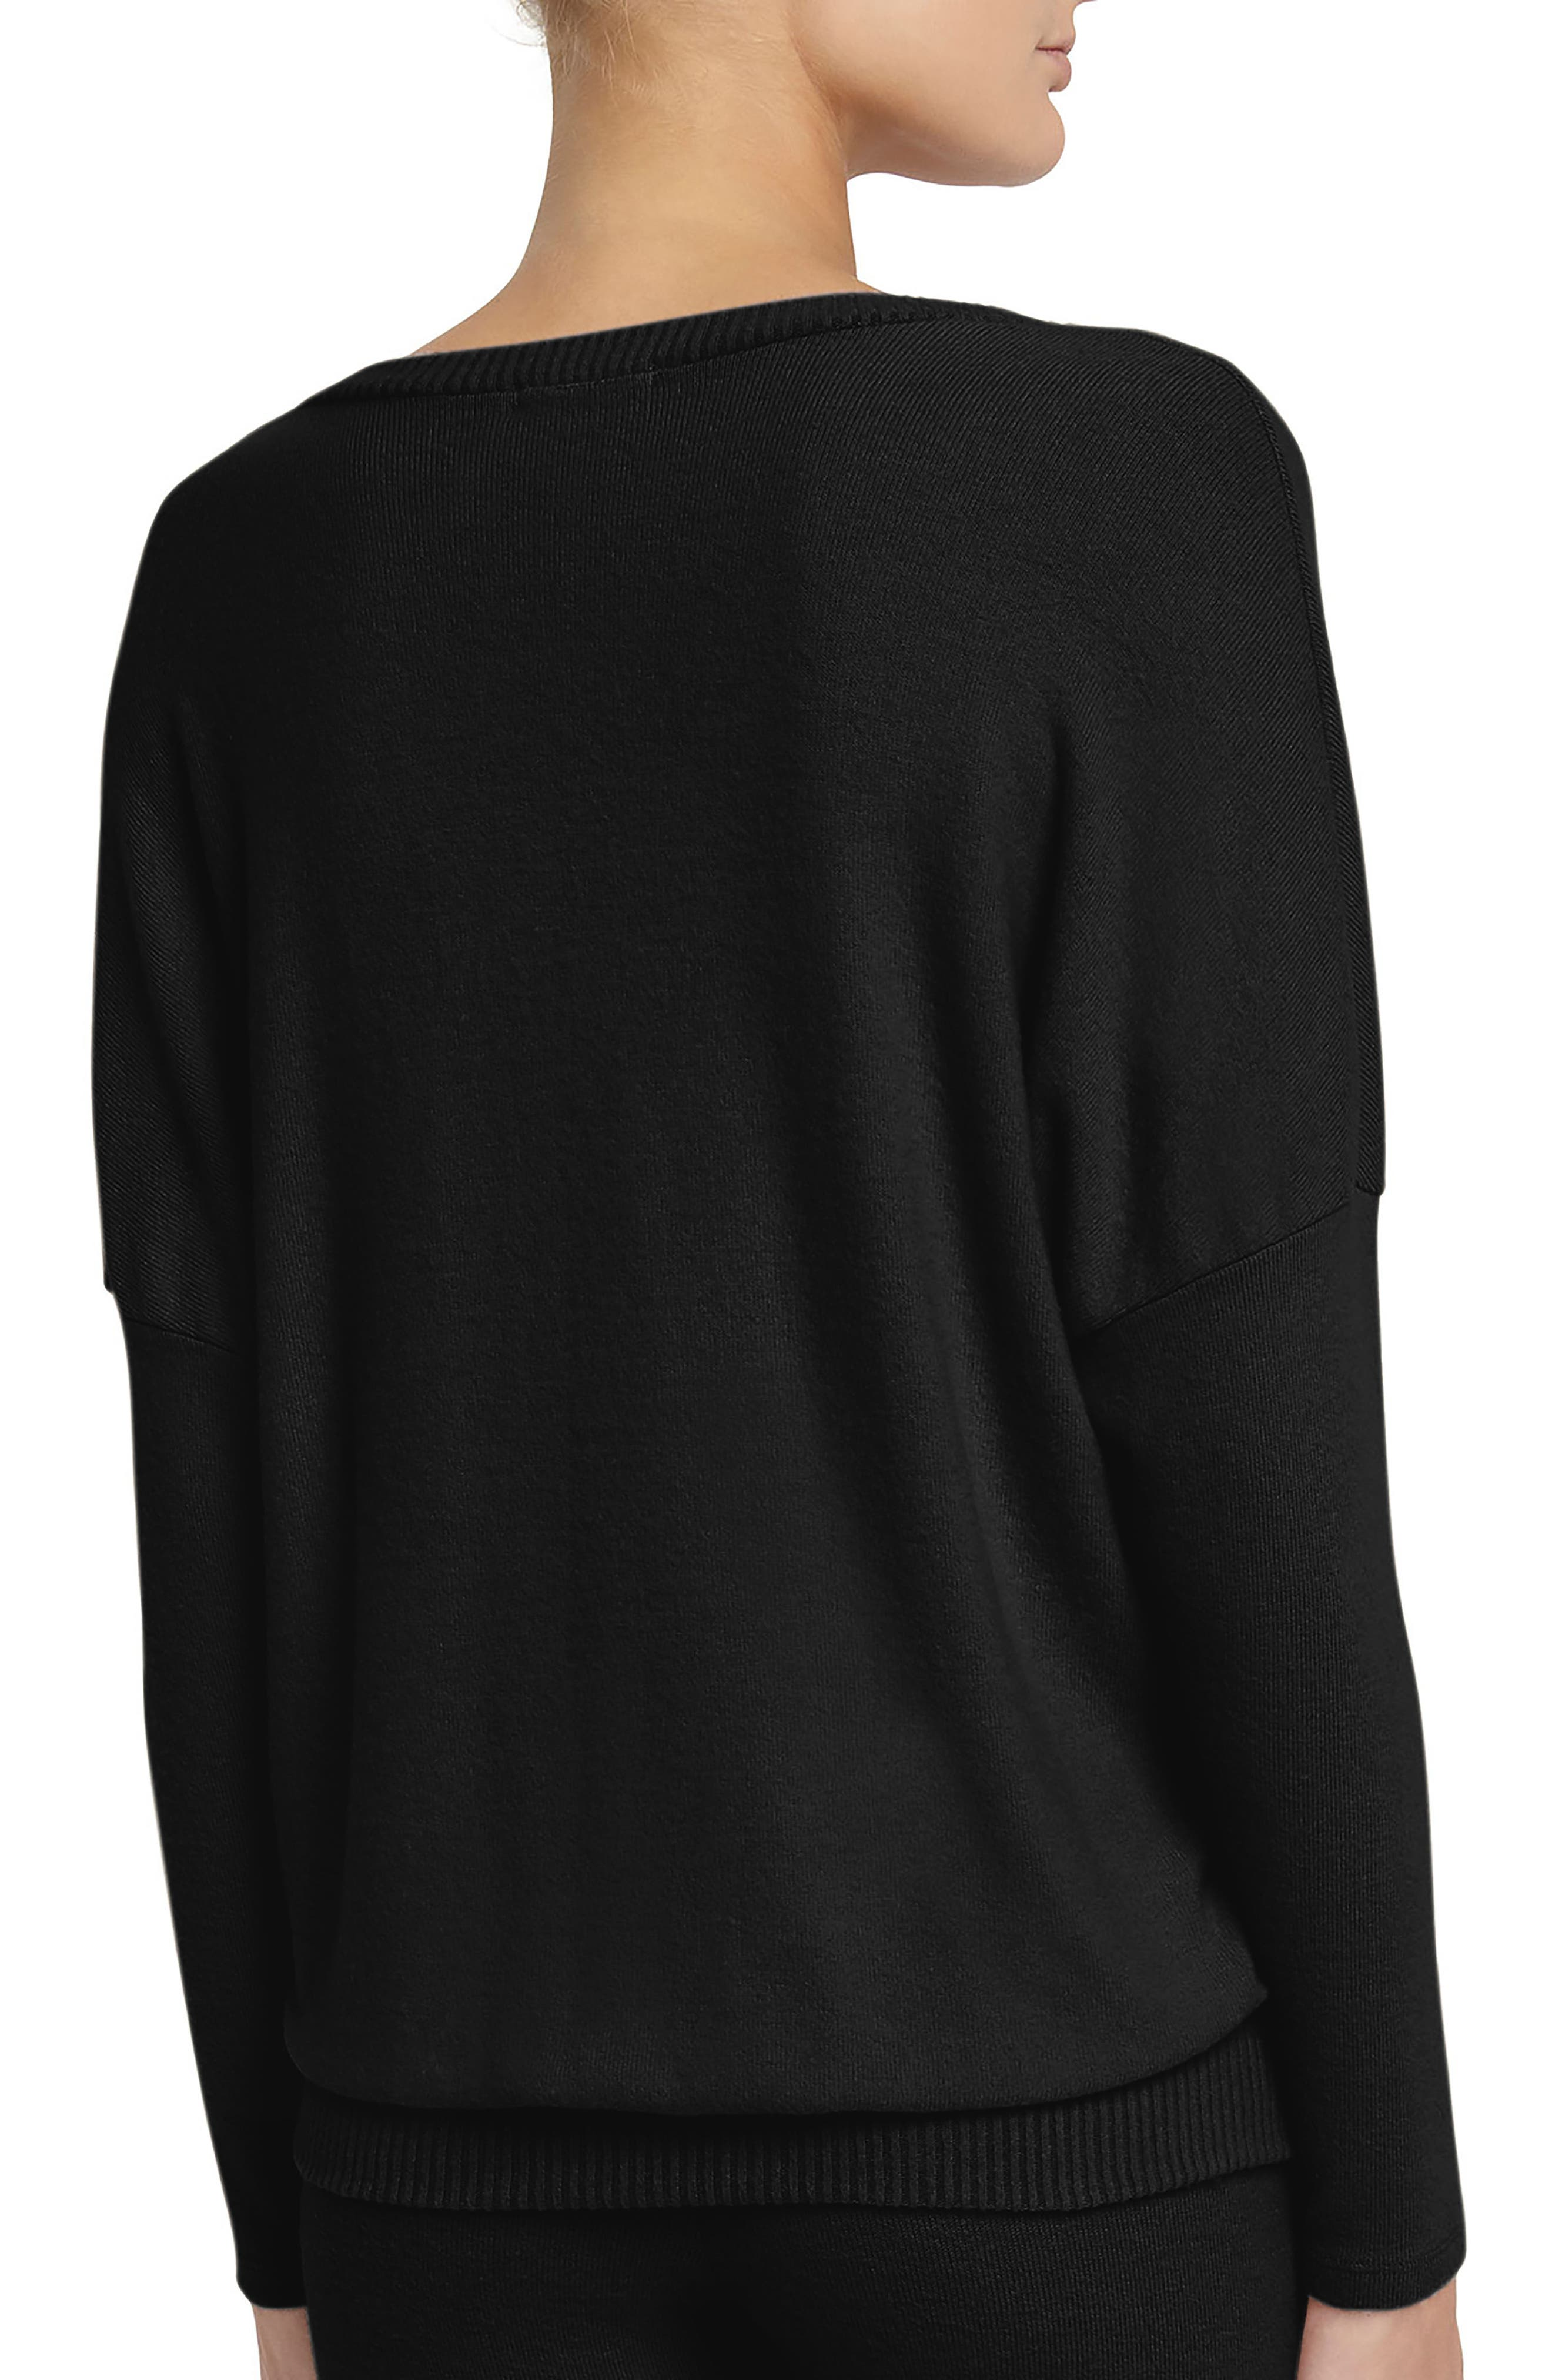 'Cozy Time' Slouchy Long Sleeve Tee,                             Alternate thumbnail 2, color,                             Black